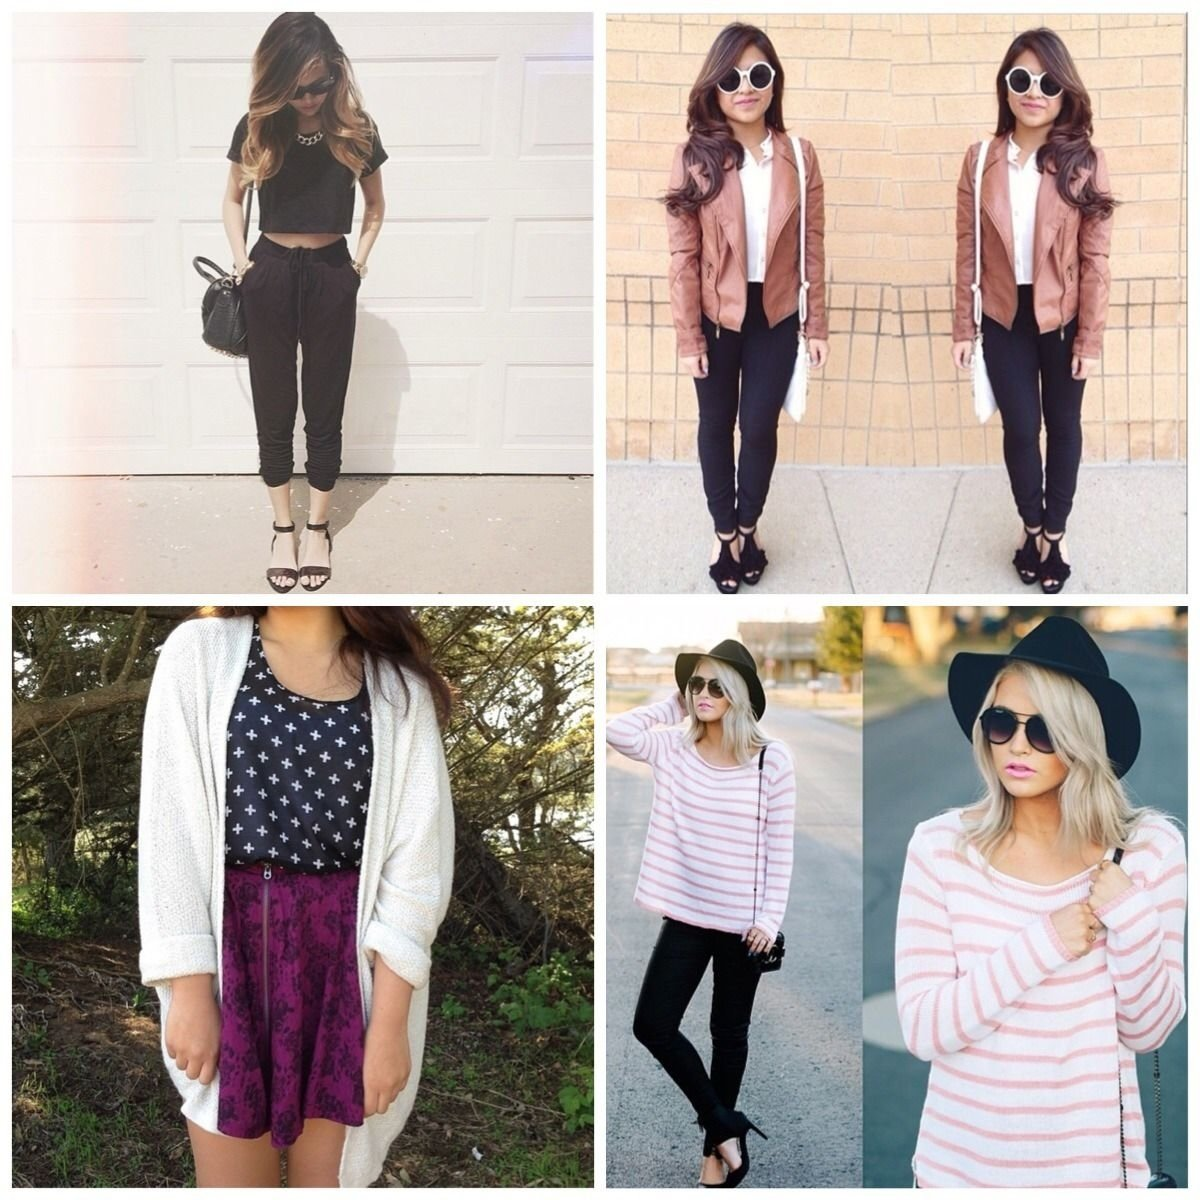 10 Lovable Cute Outfits Ideas For School spring outfit ideas tumblr google search clothes pinterest 2020